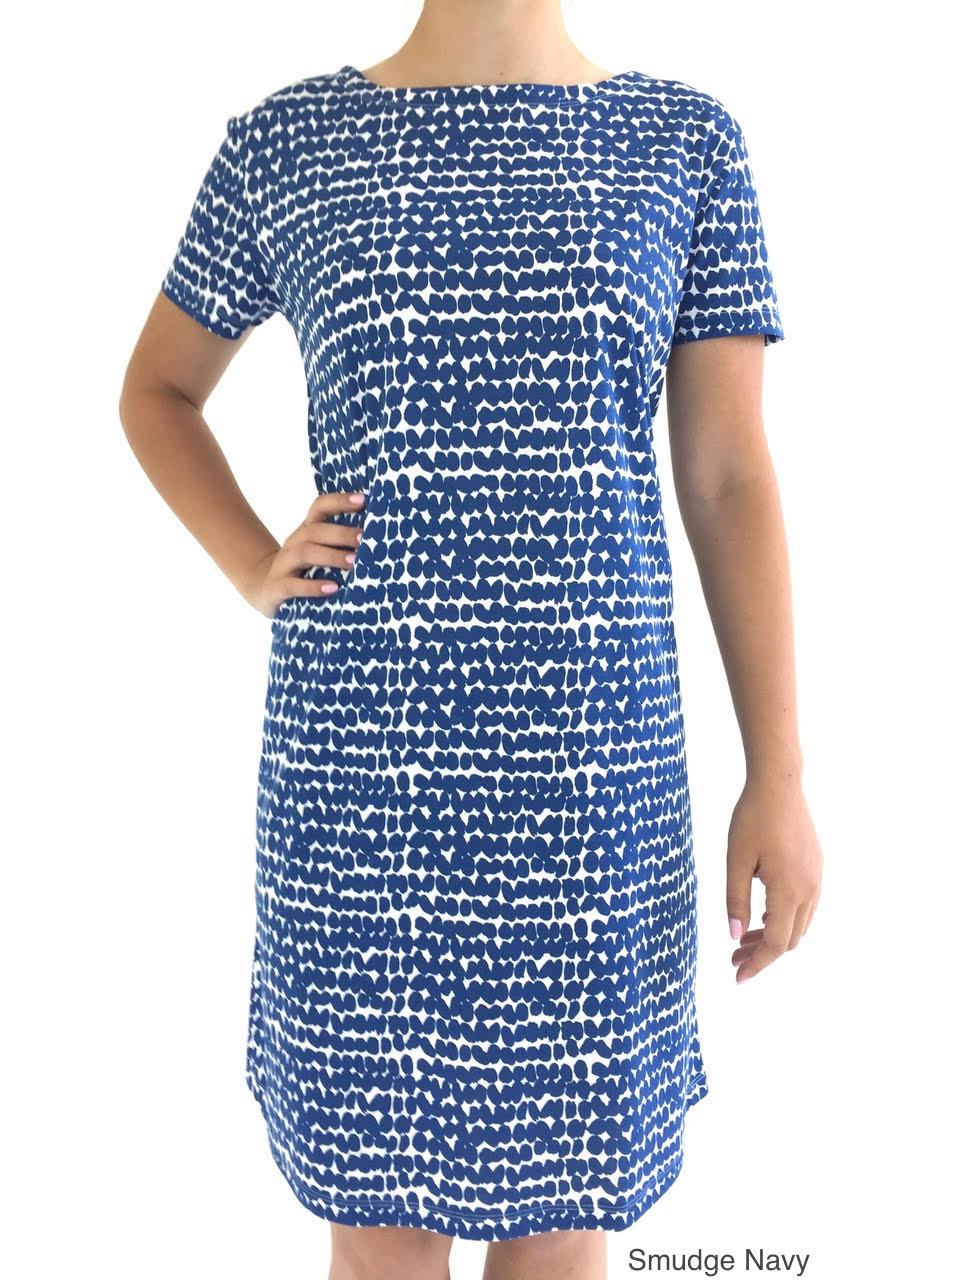 See Design Knit Dress Smudge Navy cotton coverup by Donna Gorman